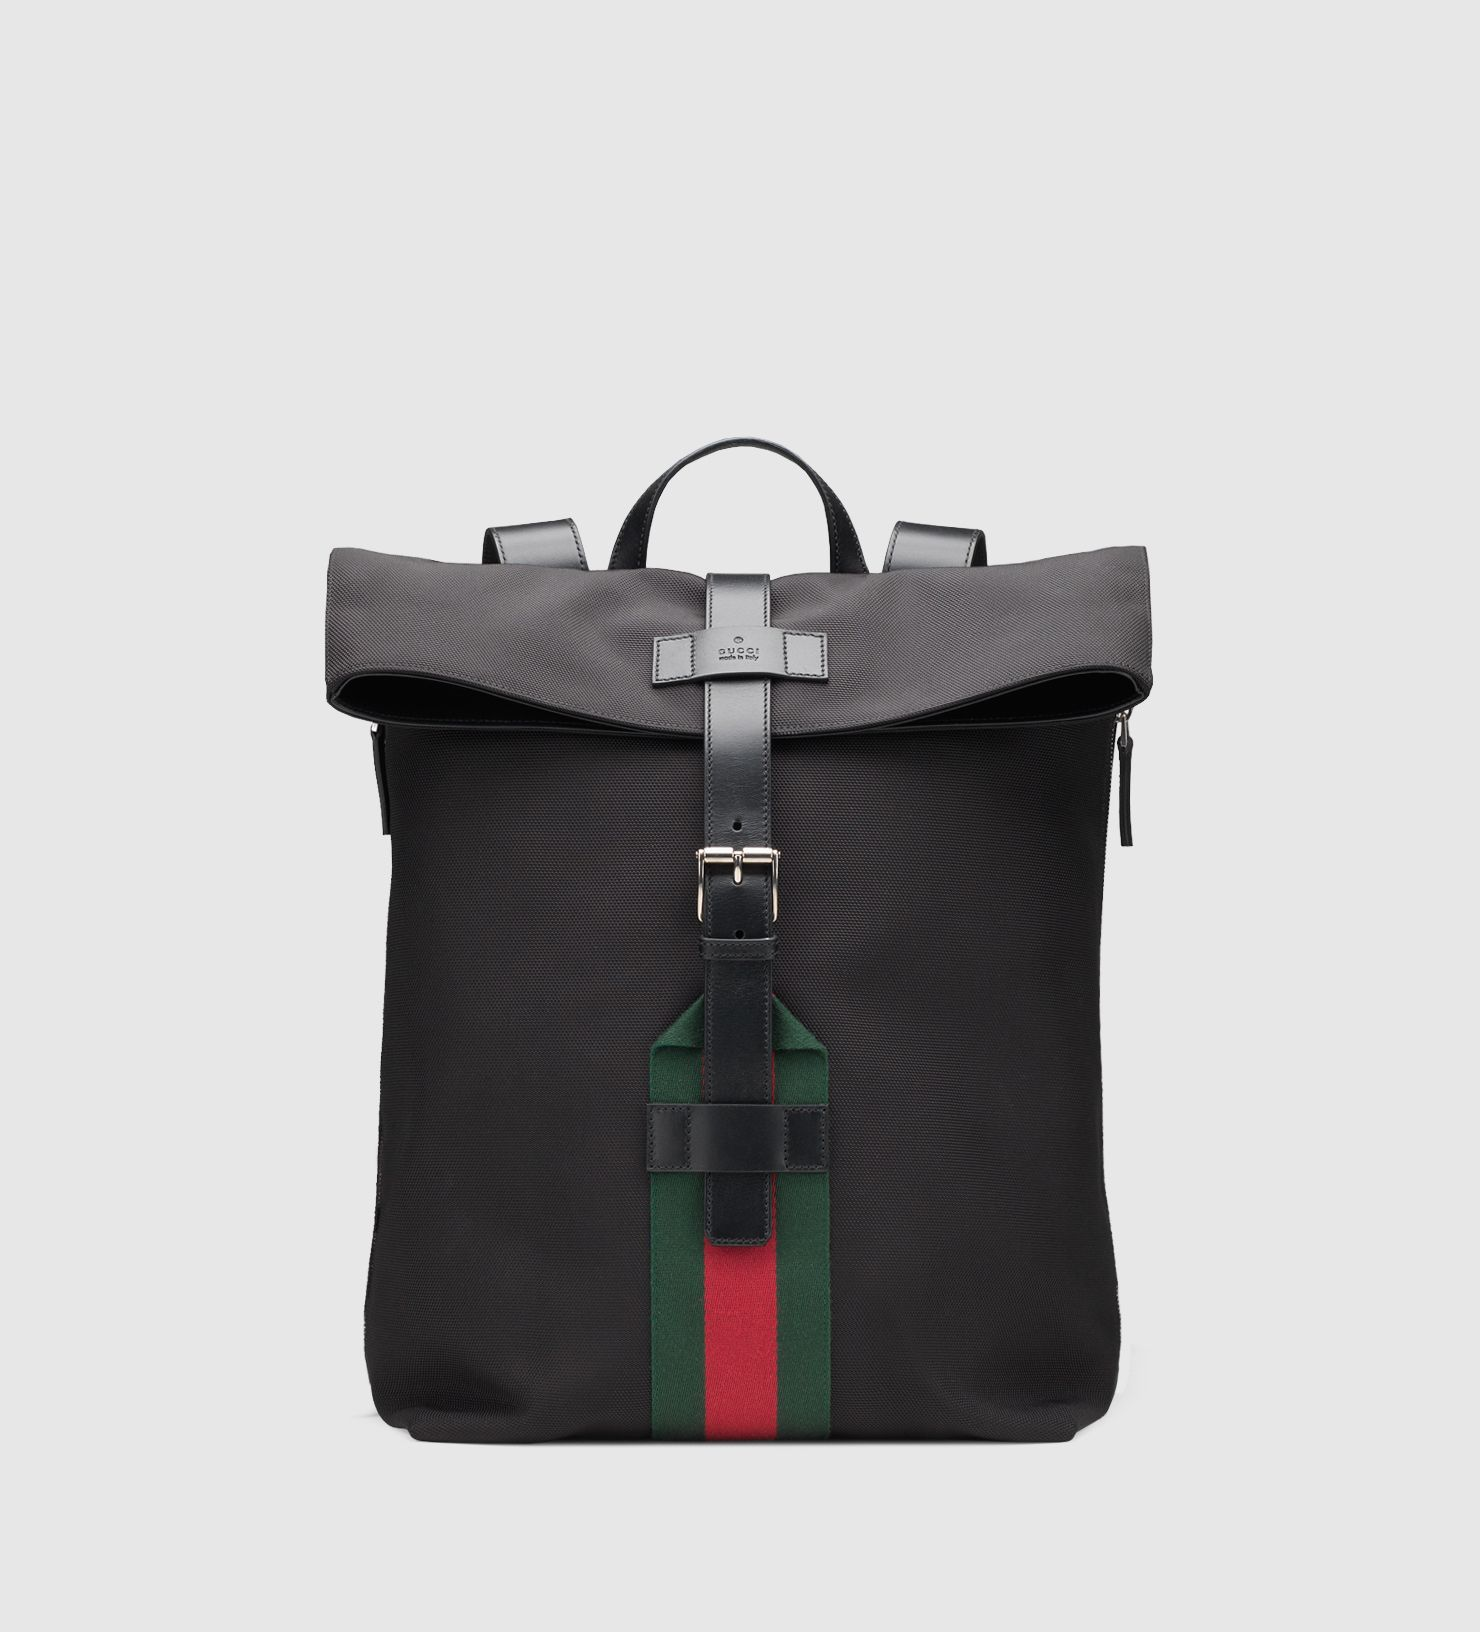 701c07da10e6 Men's Black Techno Canvas Backpack | Gucci Bag Wear | Black gucci ...